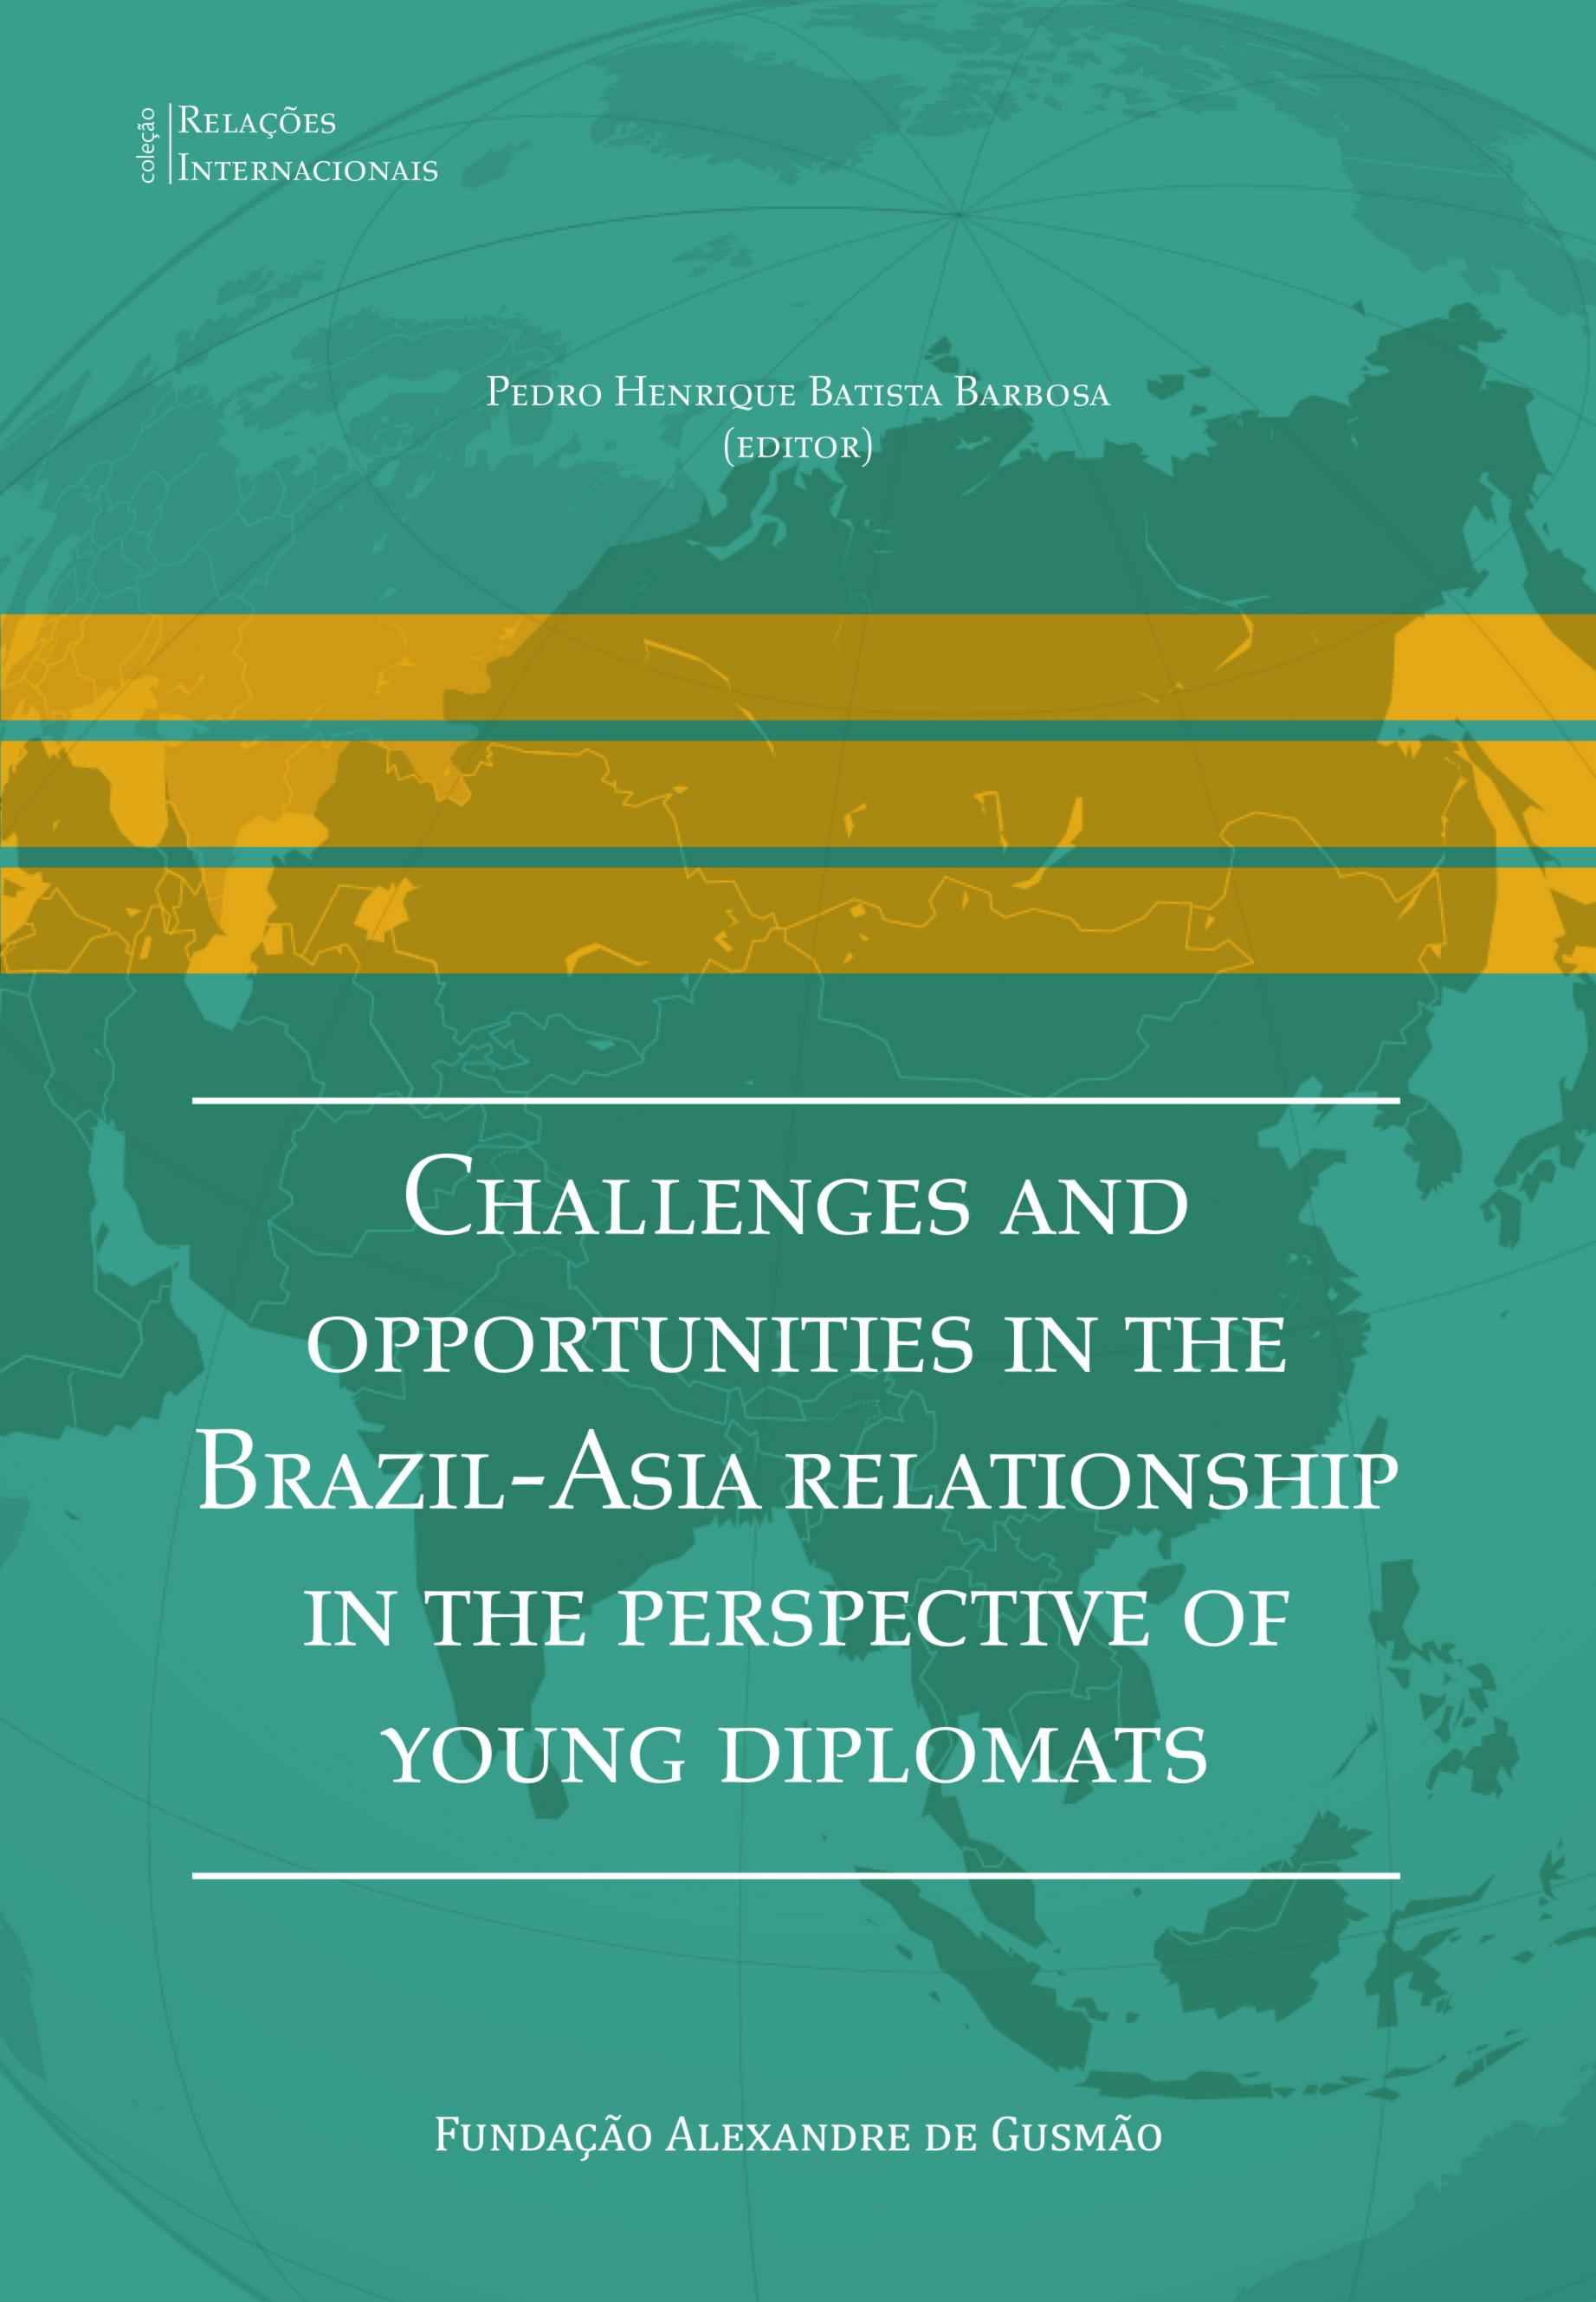 Challenges and opportunities in the Brazil-Asia relationship in the perspective of young diplomats